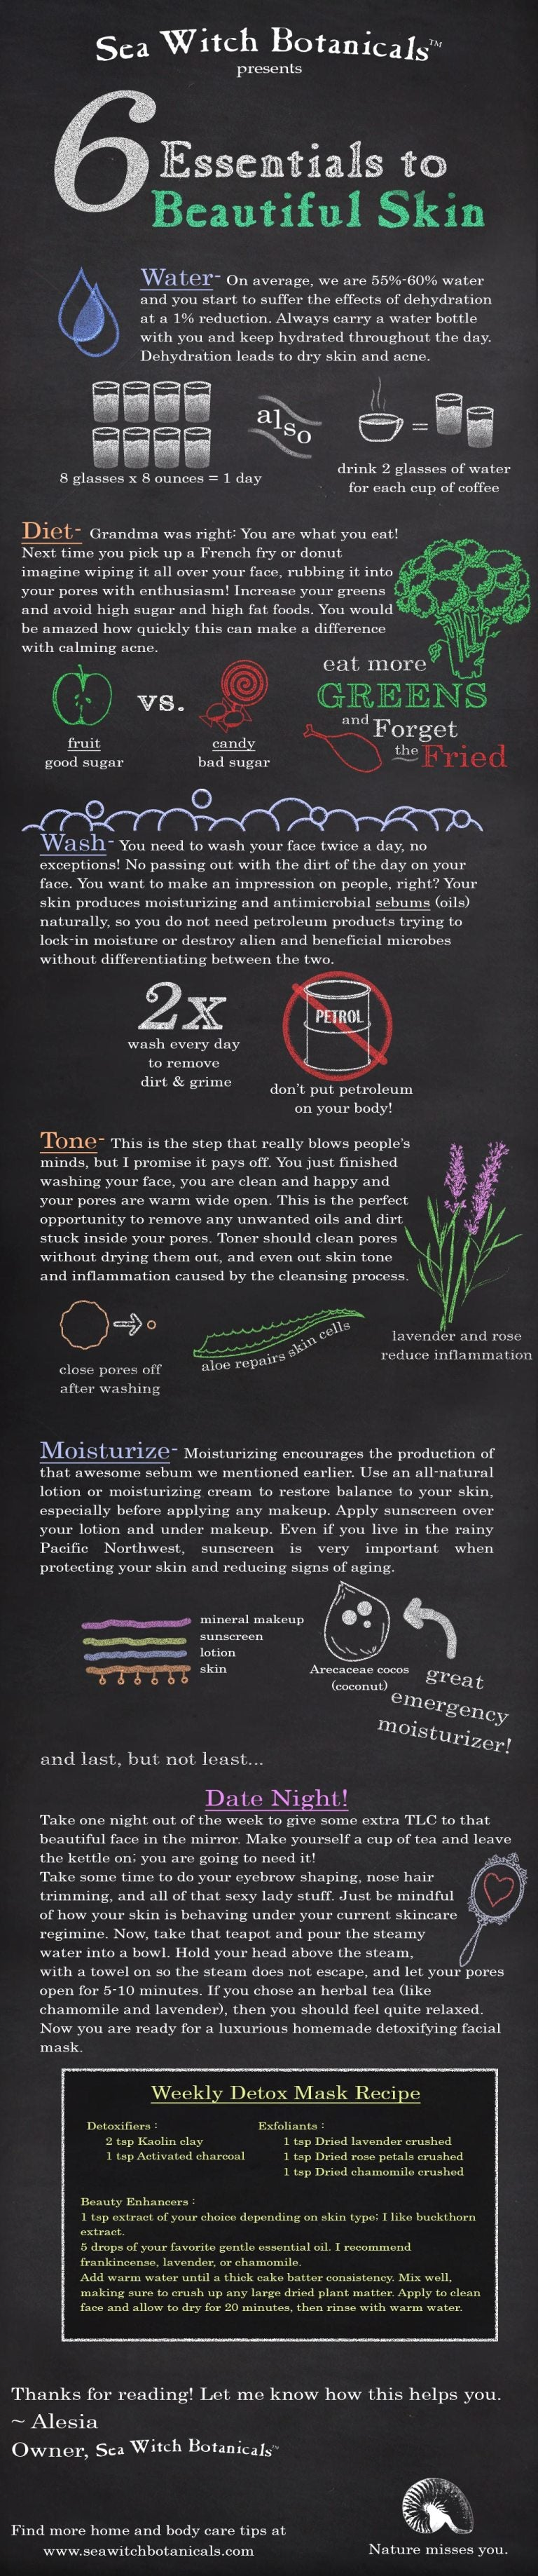 An infographic on the 6 essentials to beautiful skin - an excellent primer on facial care.